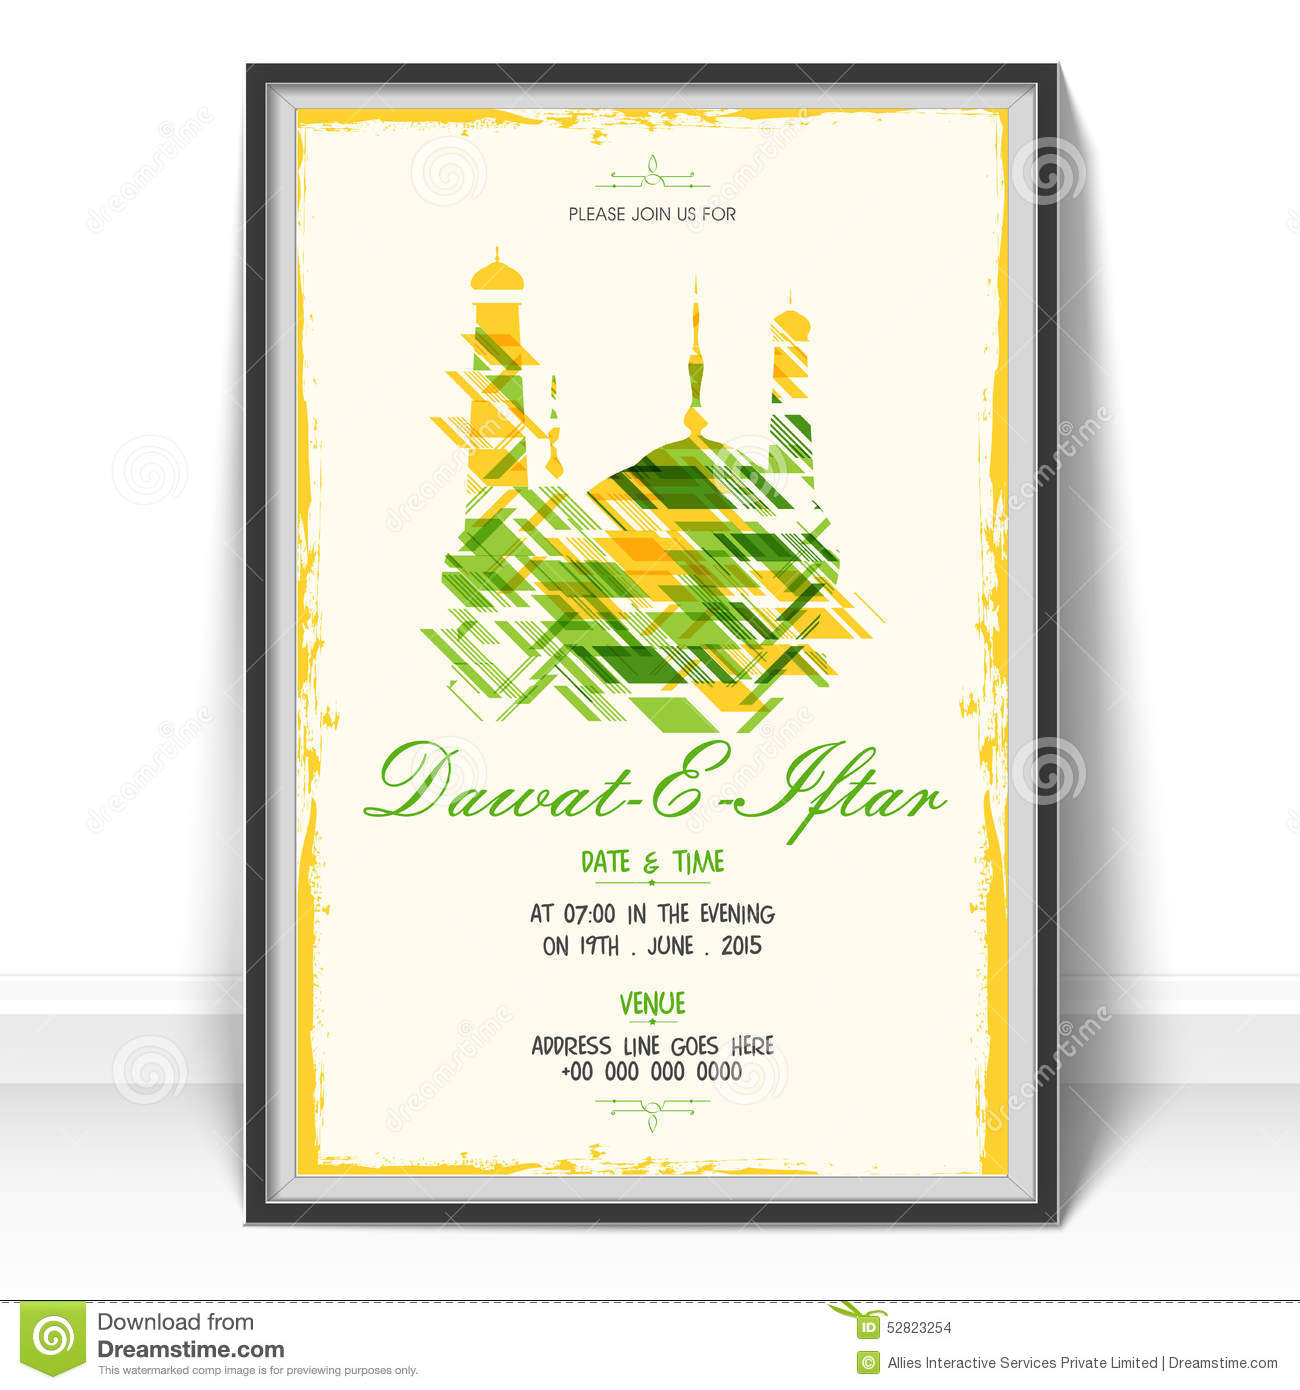 Invitation Card For Holy Month Ramadan Kareem Iftar Party ...